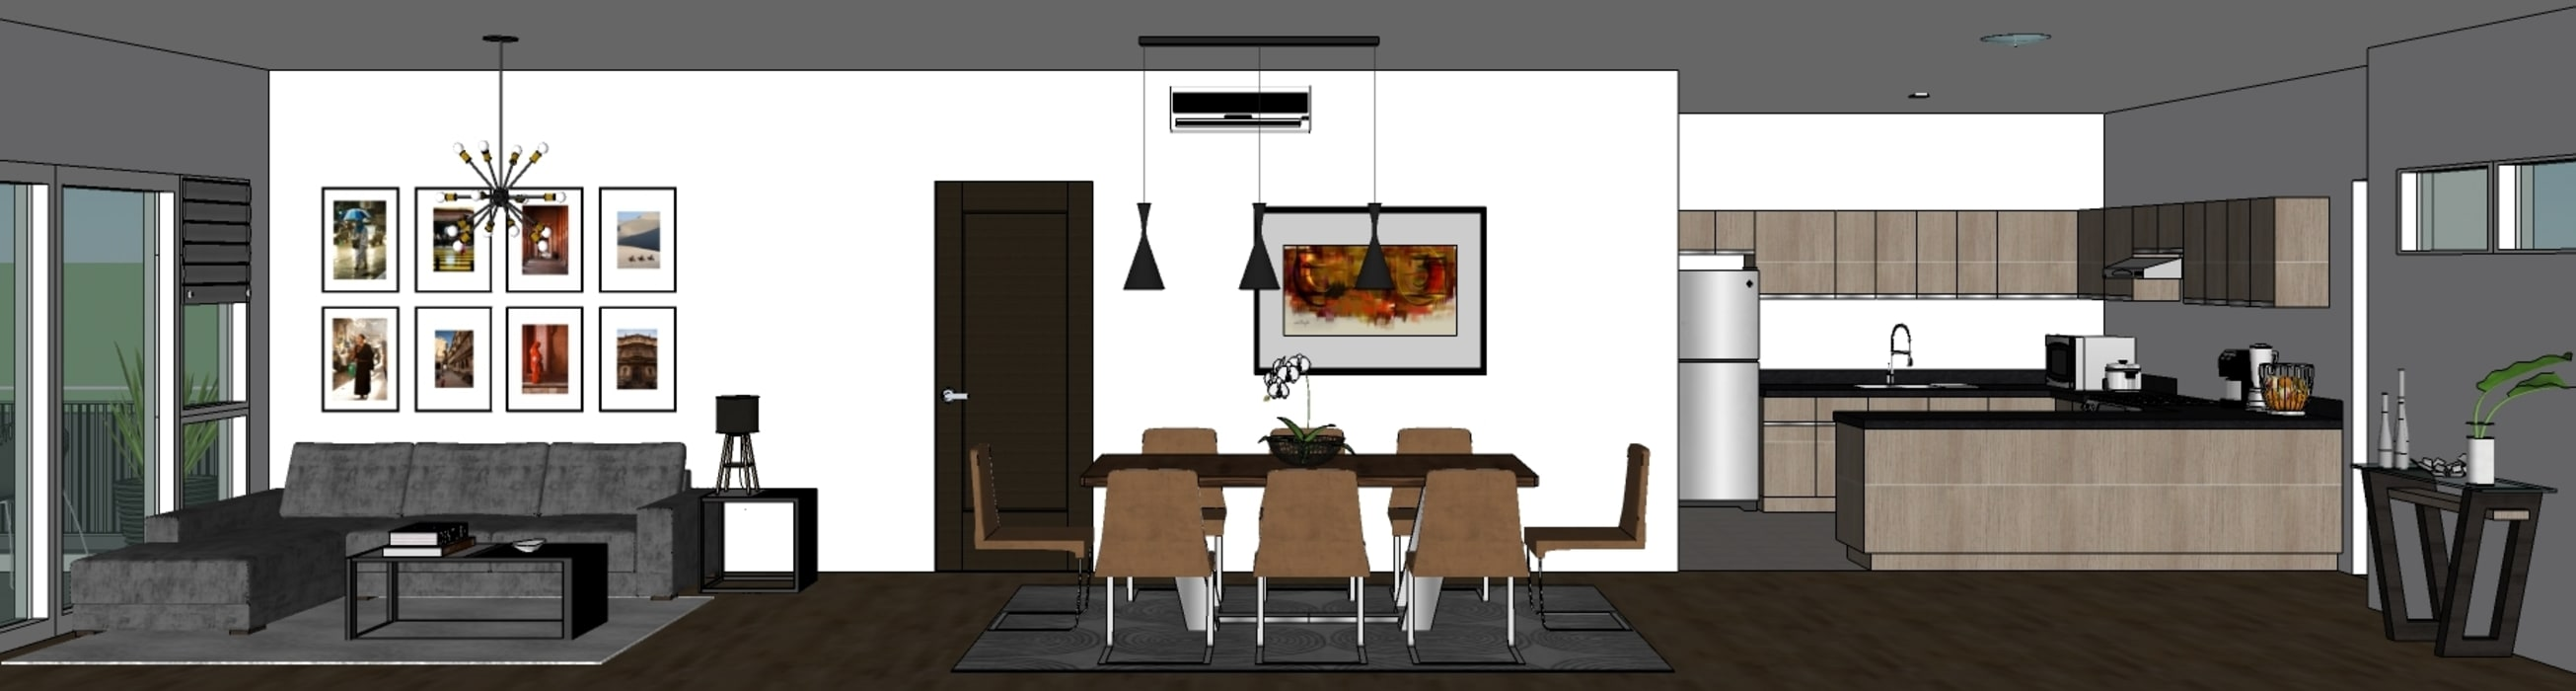 SEQUOIA AT TWO SERENDRA Modern dining room by MKC DESIGN Modern